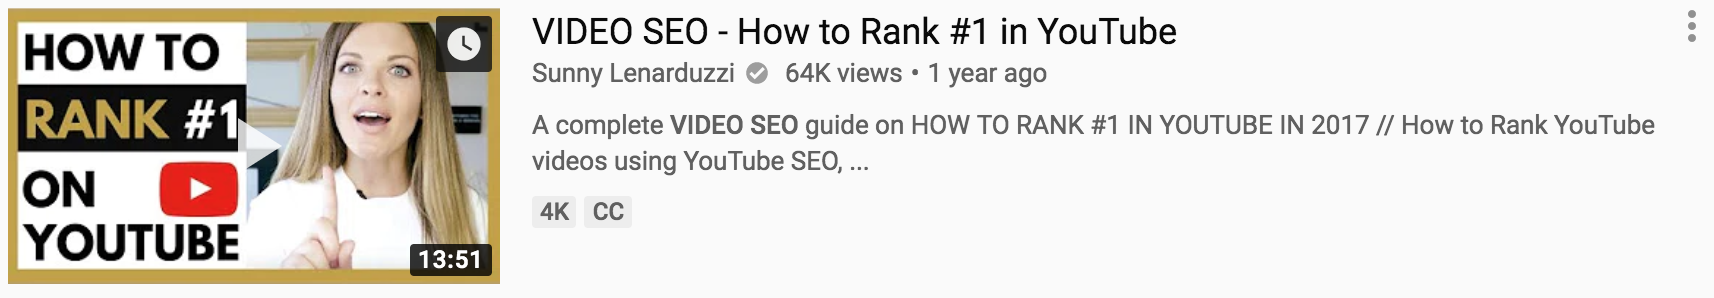 corporate videos how to rank them